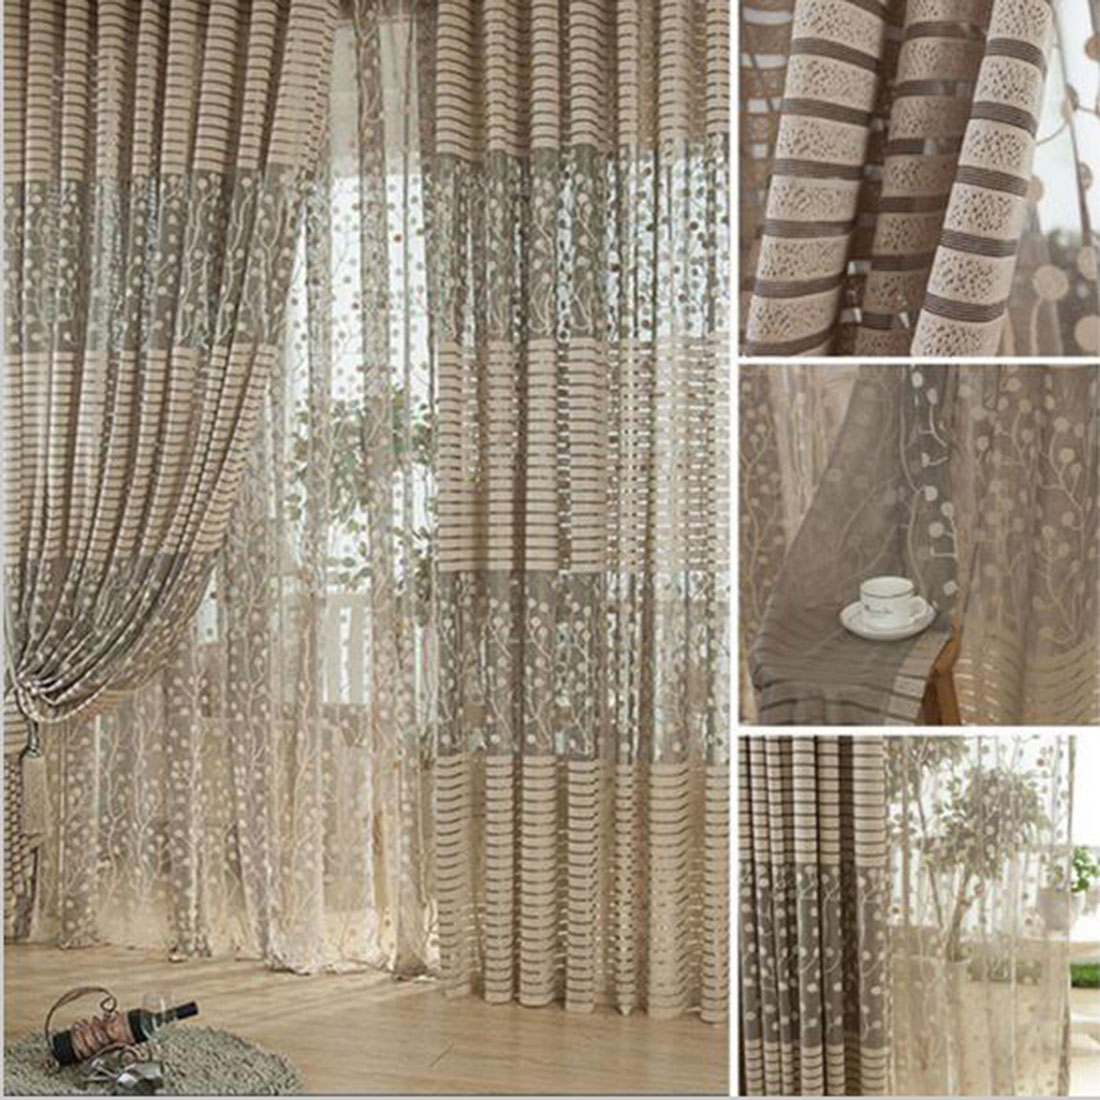 Curtains for bedroom 2016 - 2016 Warp Knitting Leaf Pattern Tulle Window Curtain Sheer Curtains For Livingroom Bedroom Jacquard Embroidered Curtain Panel